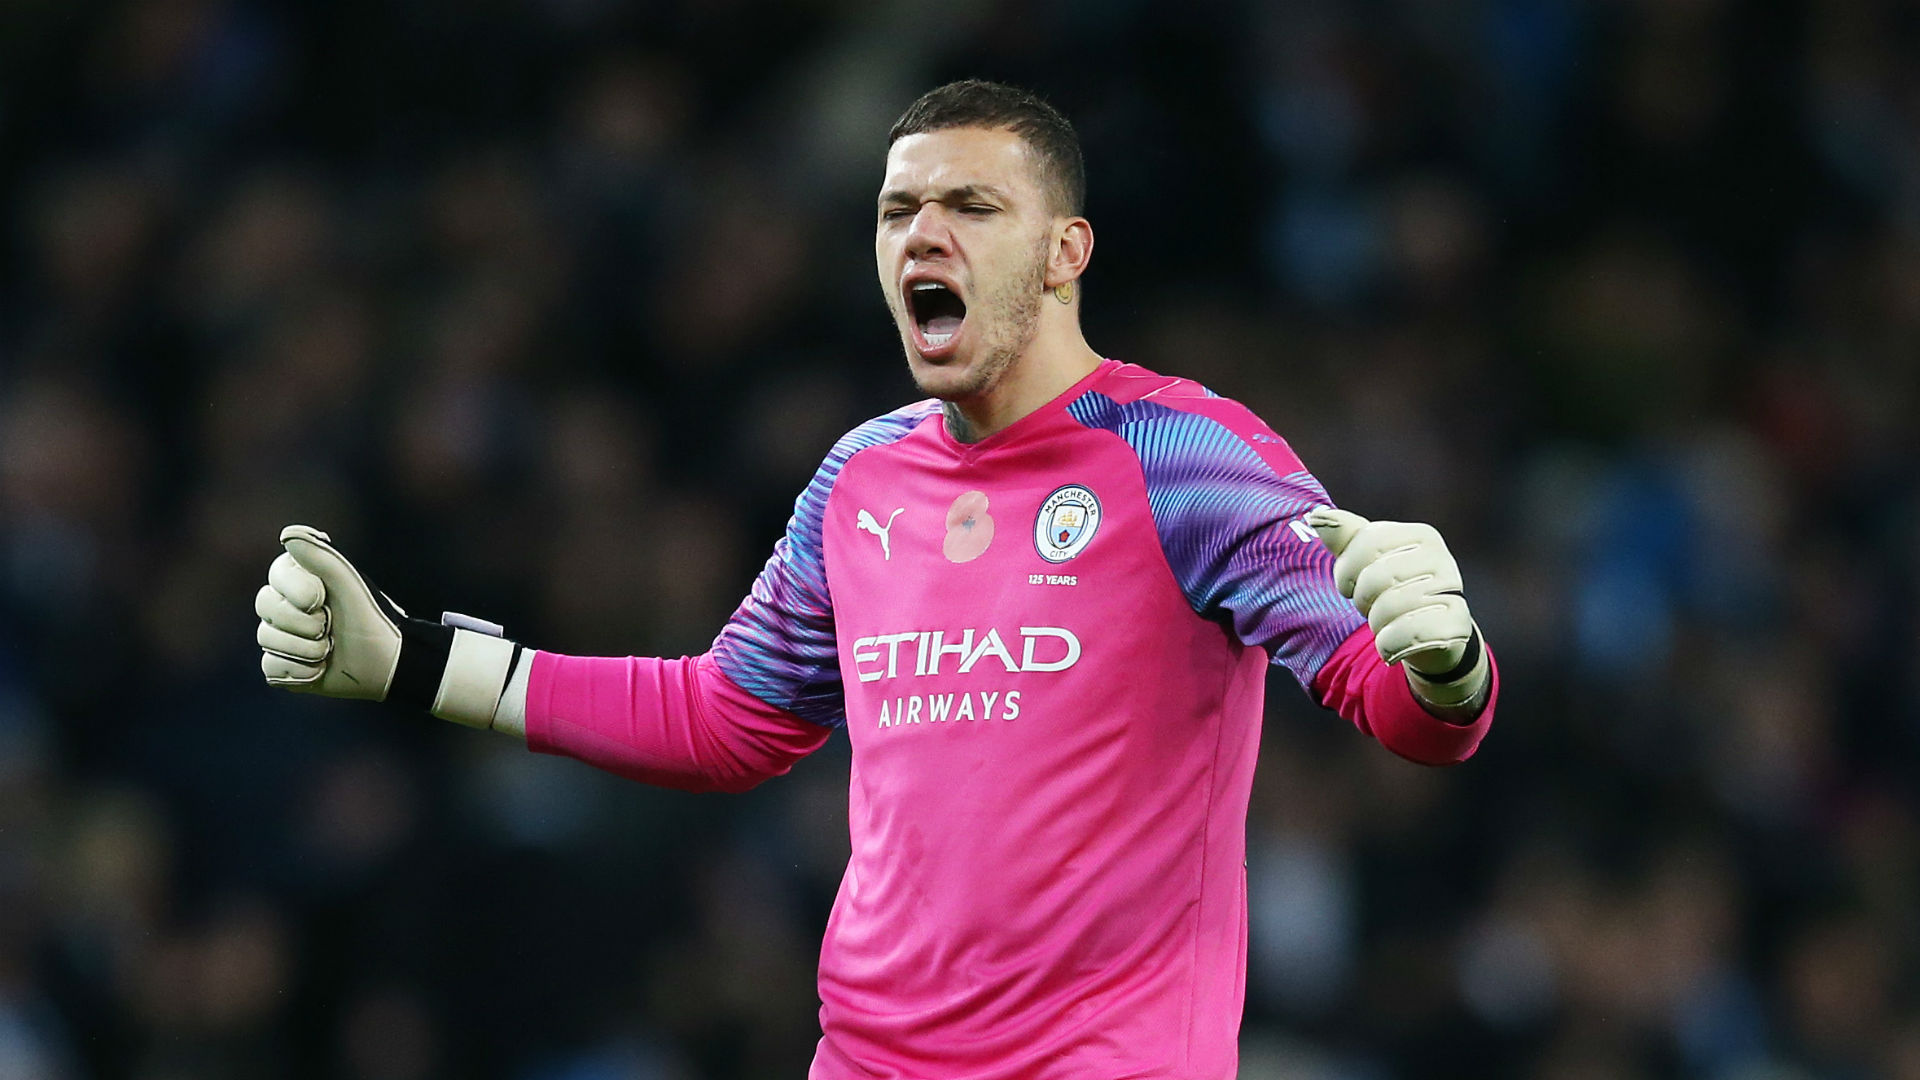 Ederson returns as City look to bounce back against Chelsea